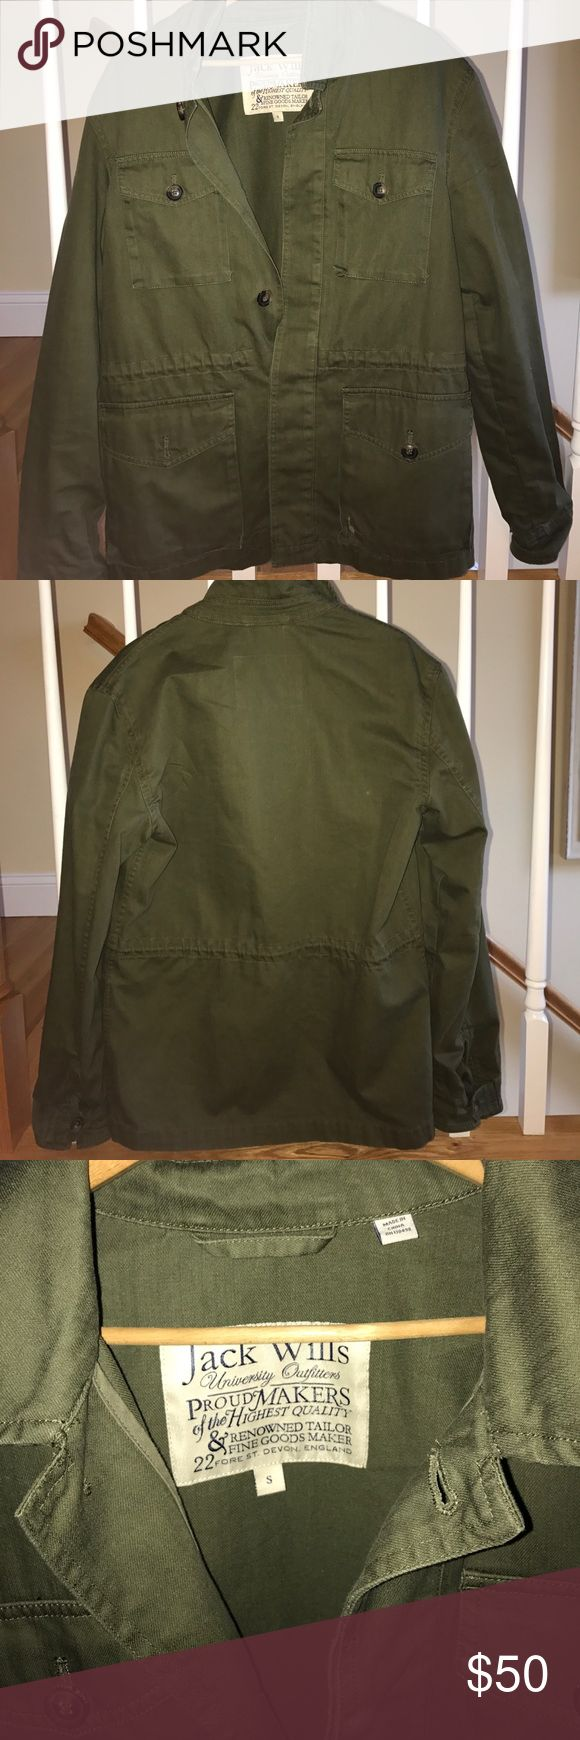 Jack Wills green Field Jacket Pristine quality Jack wills field jacket. Super neutral and matches everything, nice cotton twill material is durable. Worn 2-3 times. Flattering fit Jack Wills Jackets & Coats Military & Field